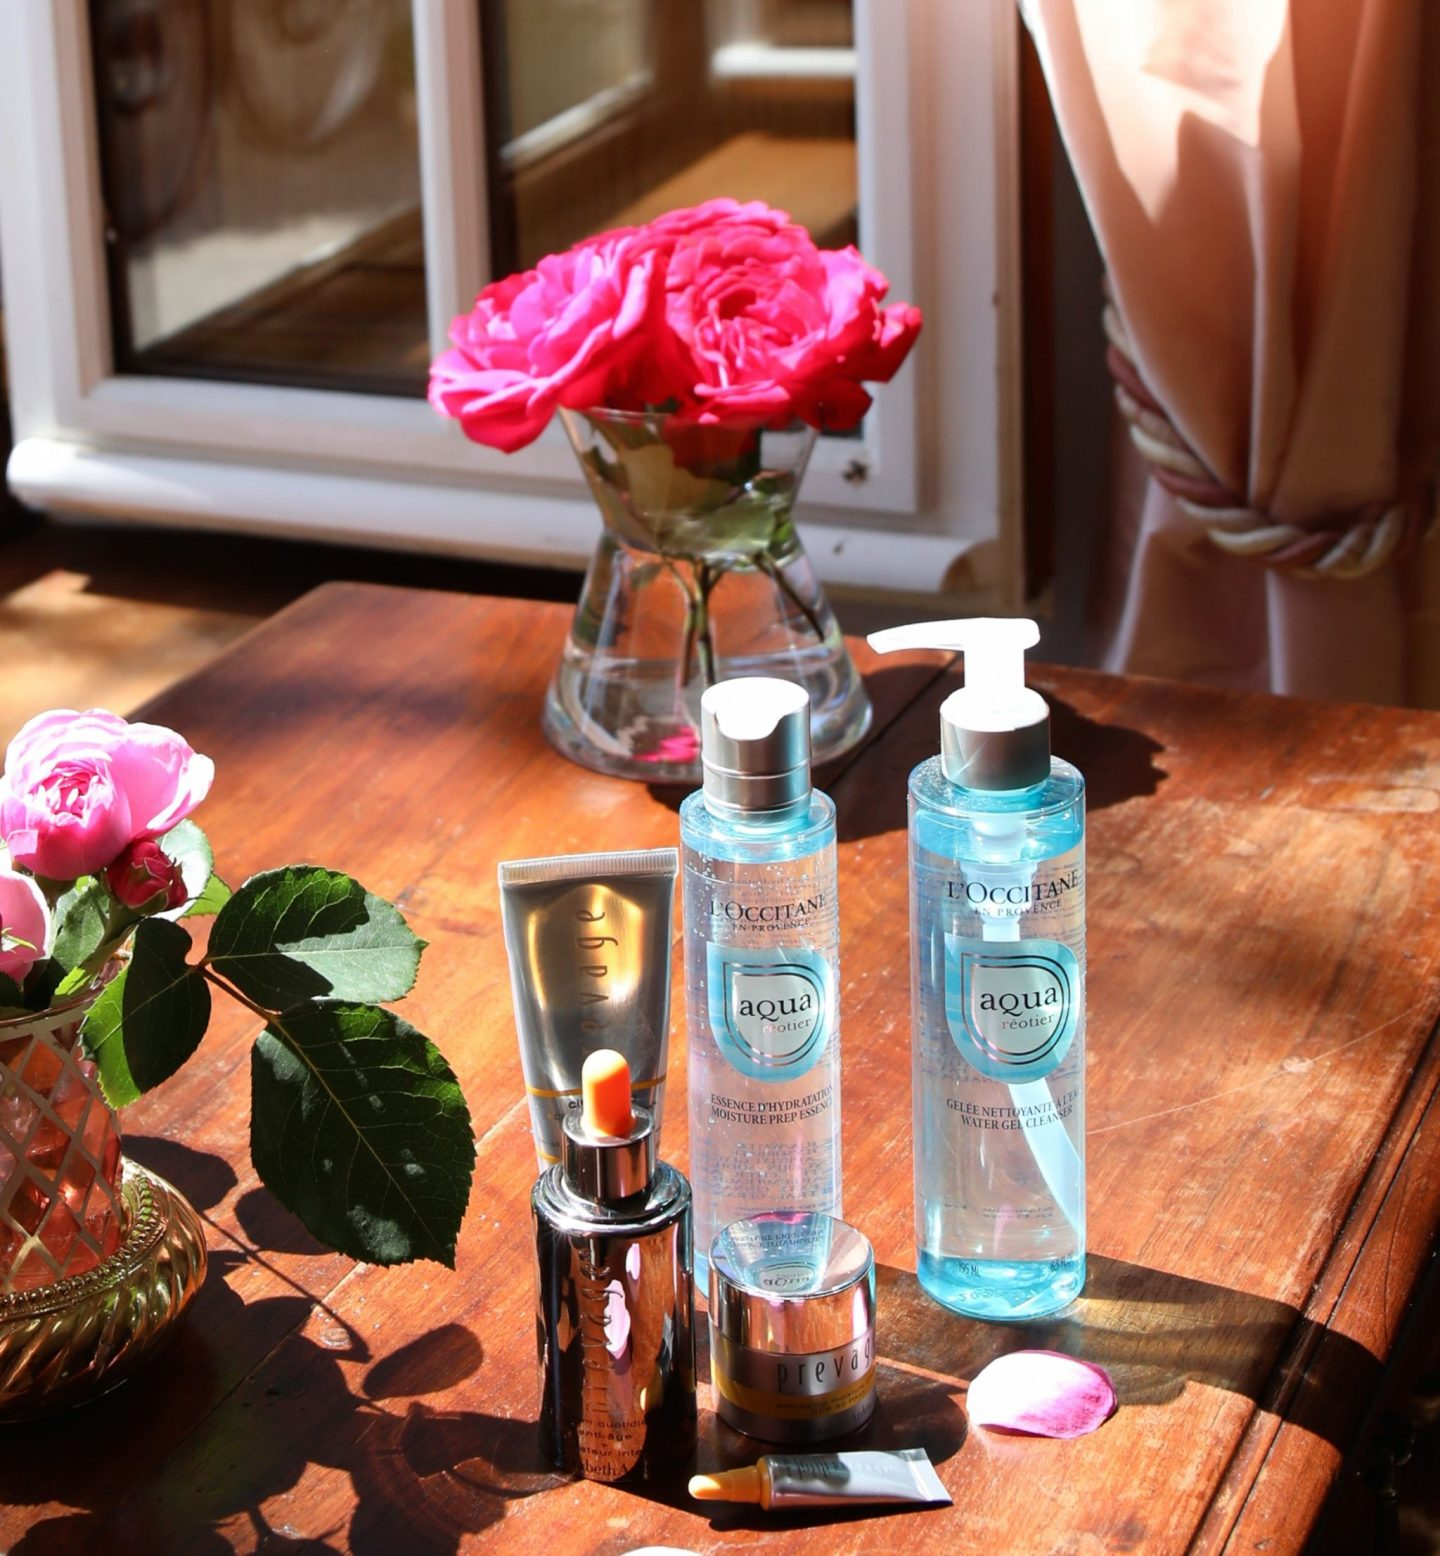 My Latest Travel Beauty Routine for flawless skin